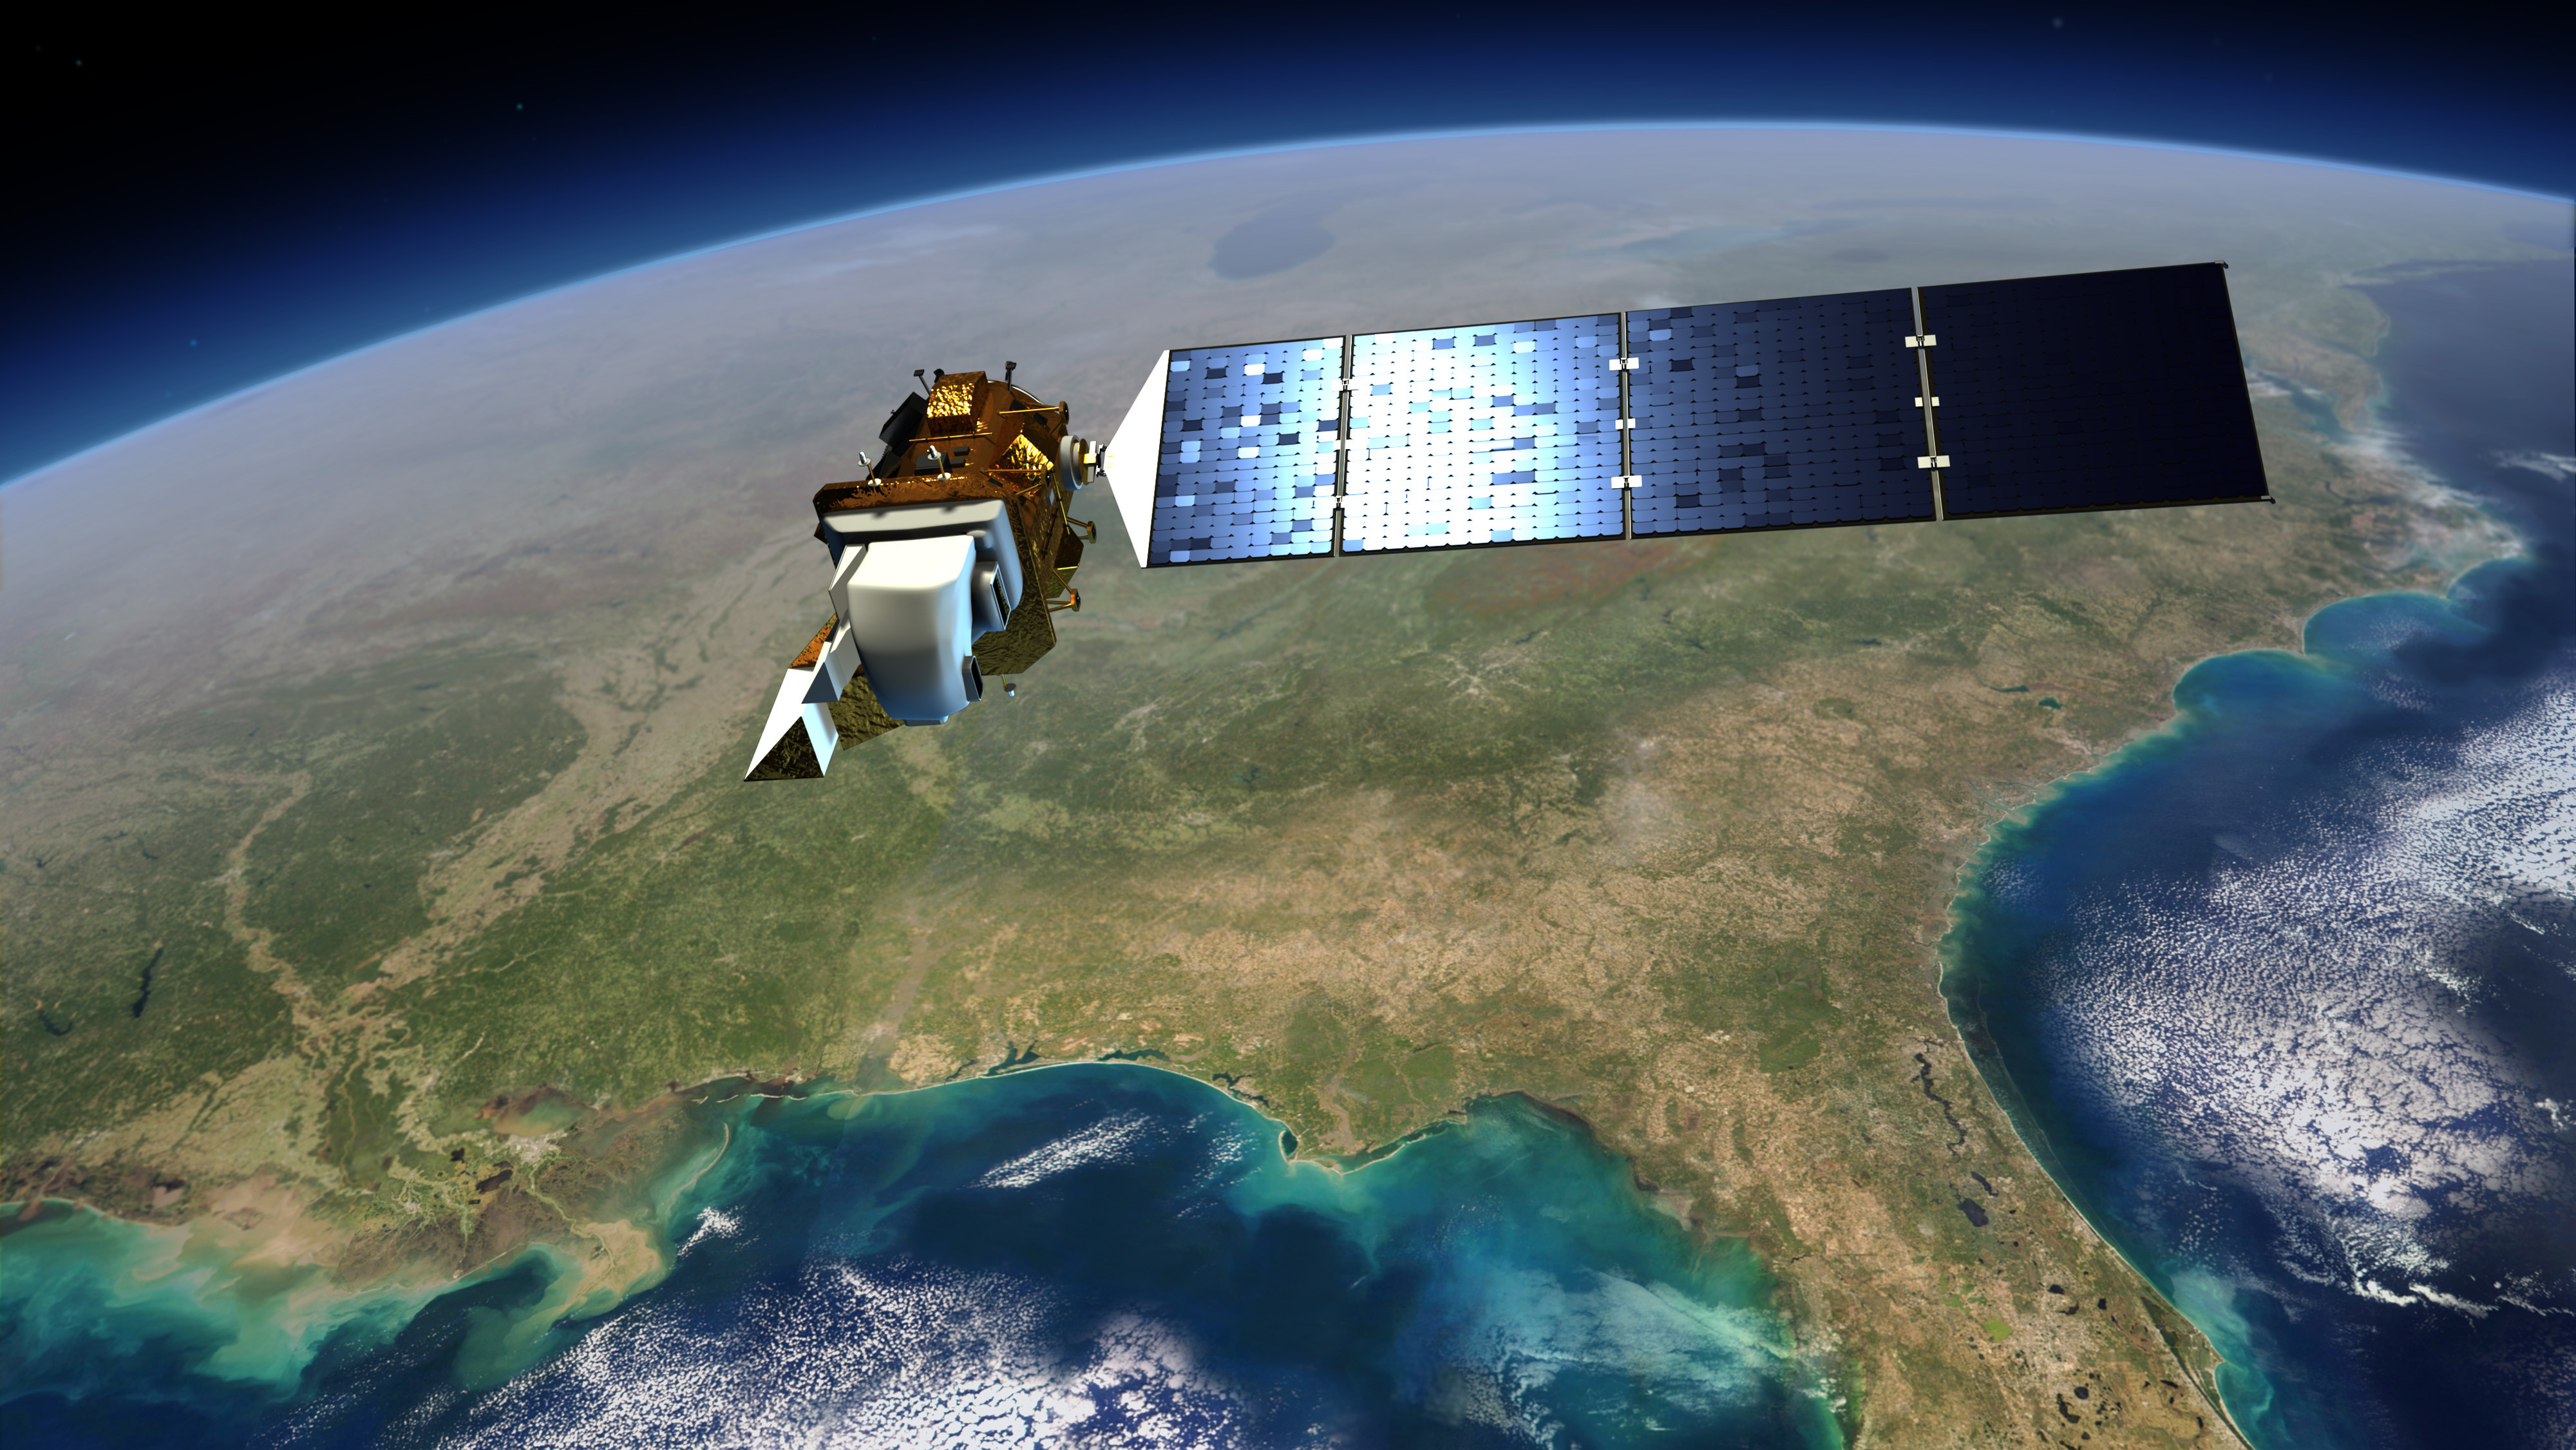 Landsat satellites, built and launched by Nasa space agency and managed by the U.S. Geological Survey, have provided data crucial for modern maps used by consumers, researchers and governments worldwide.